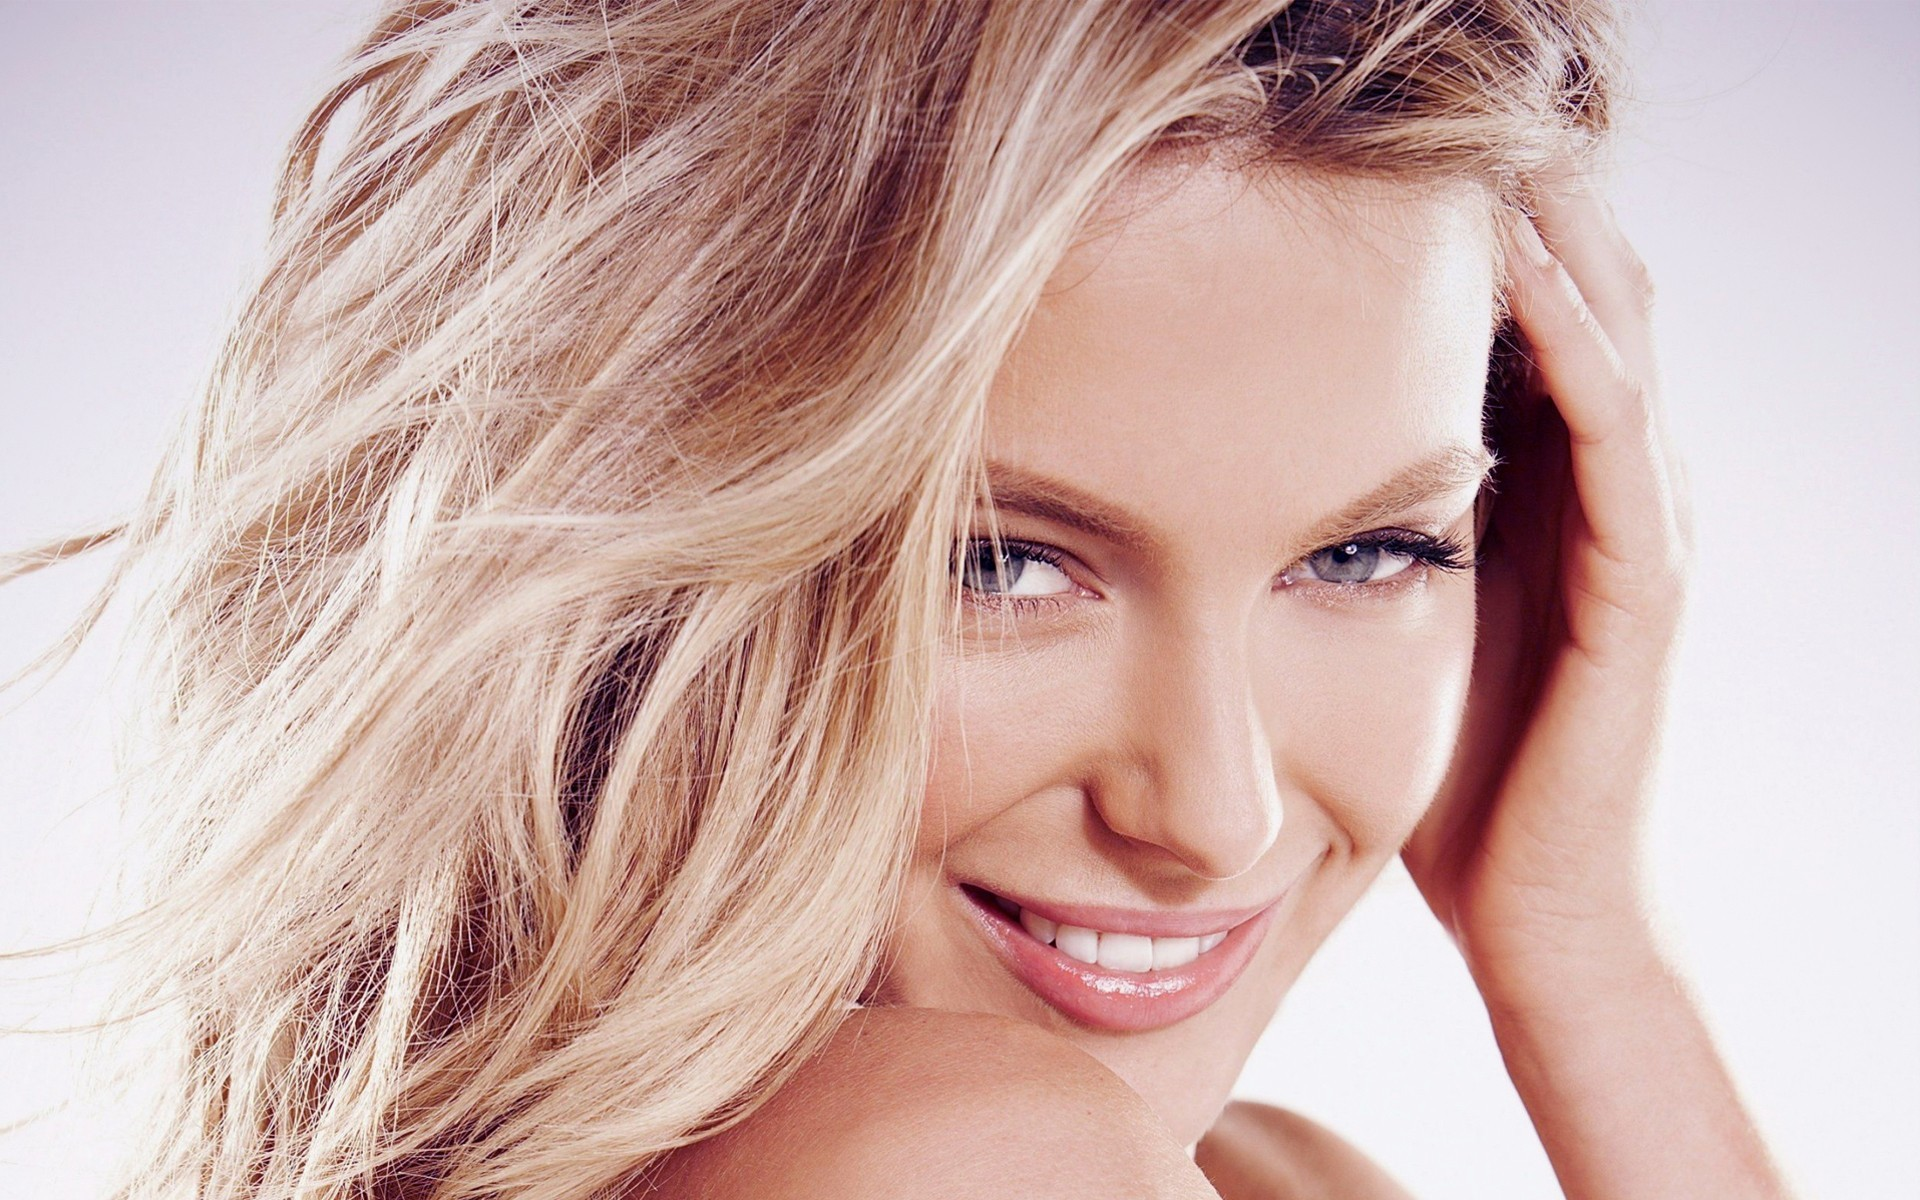 blondes woman close-up Celebrity HD Wallpaper